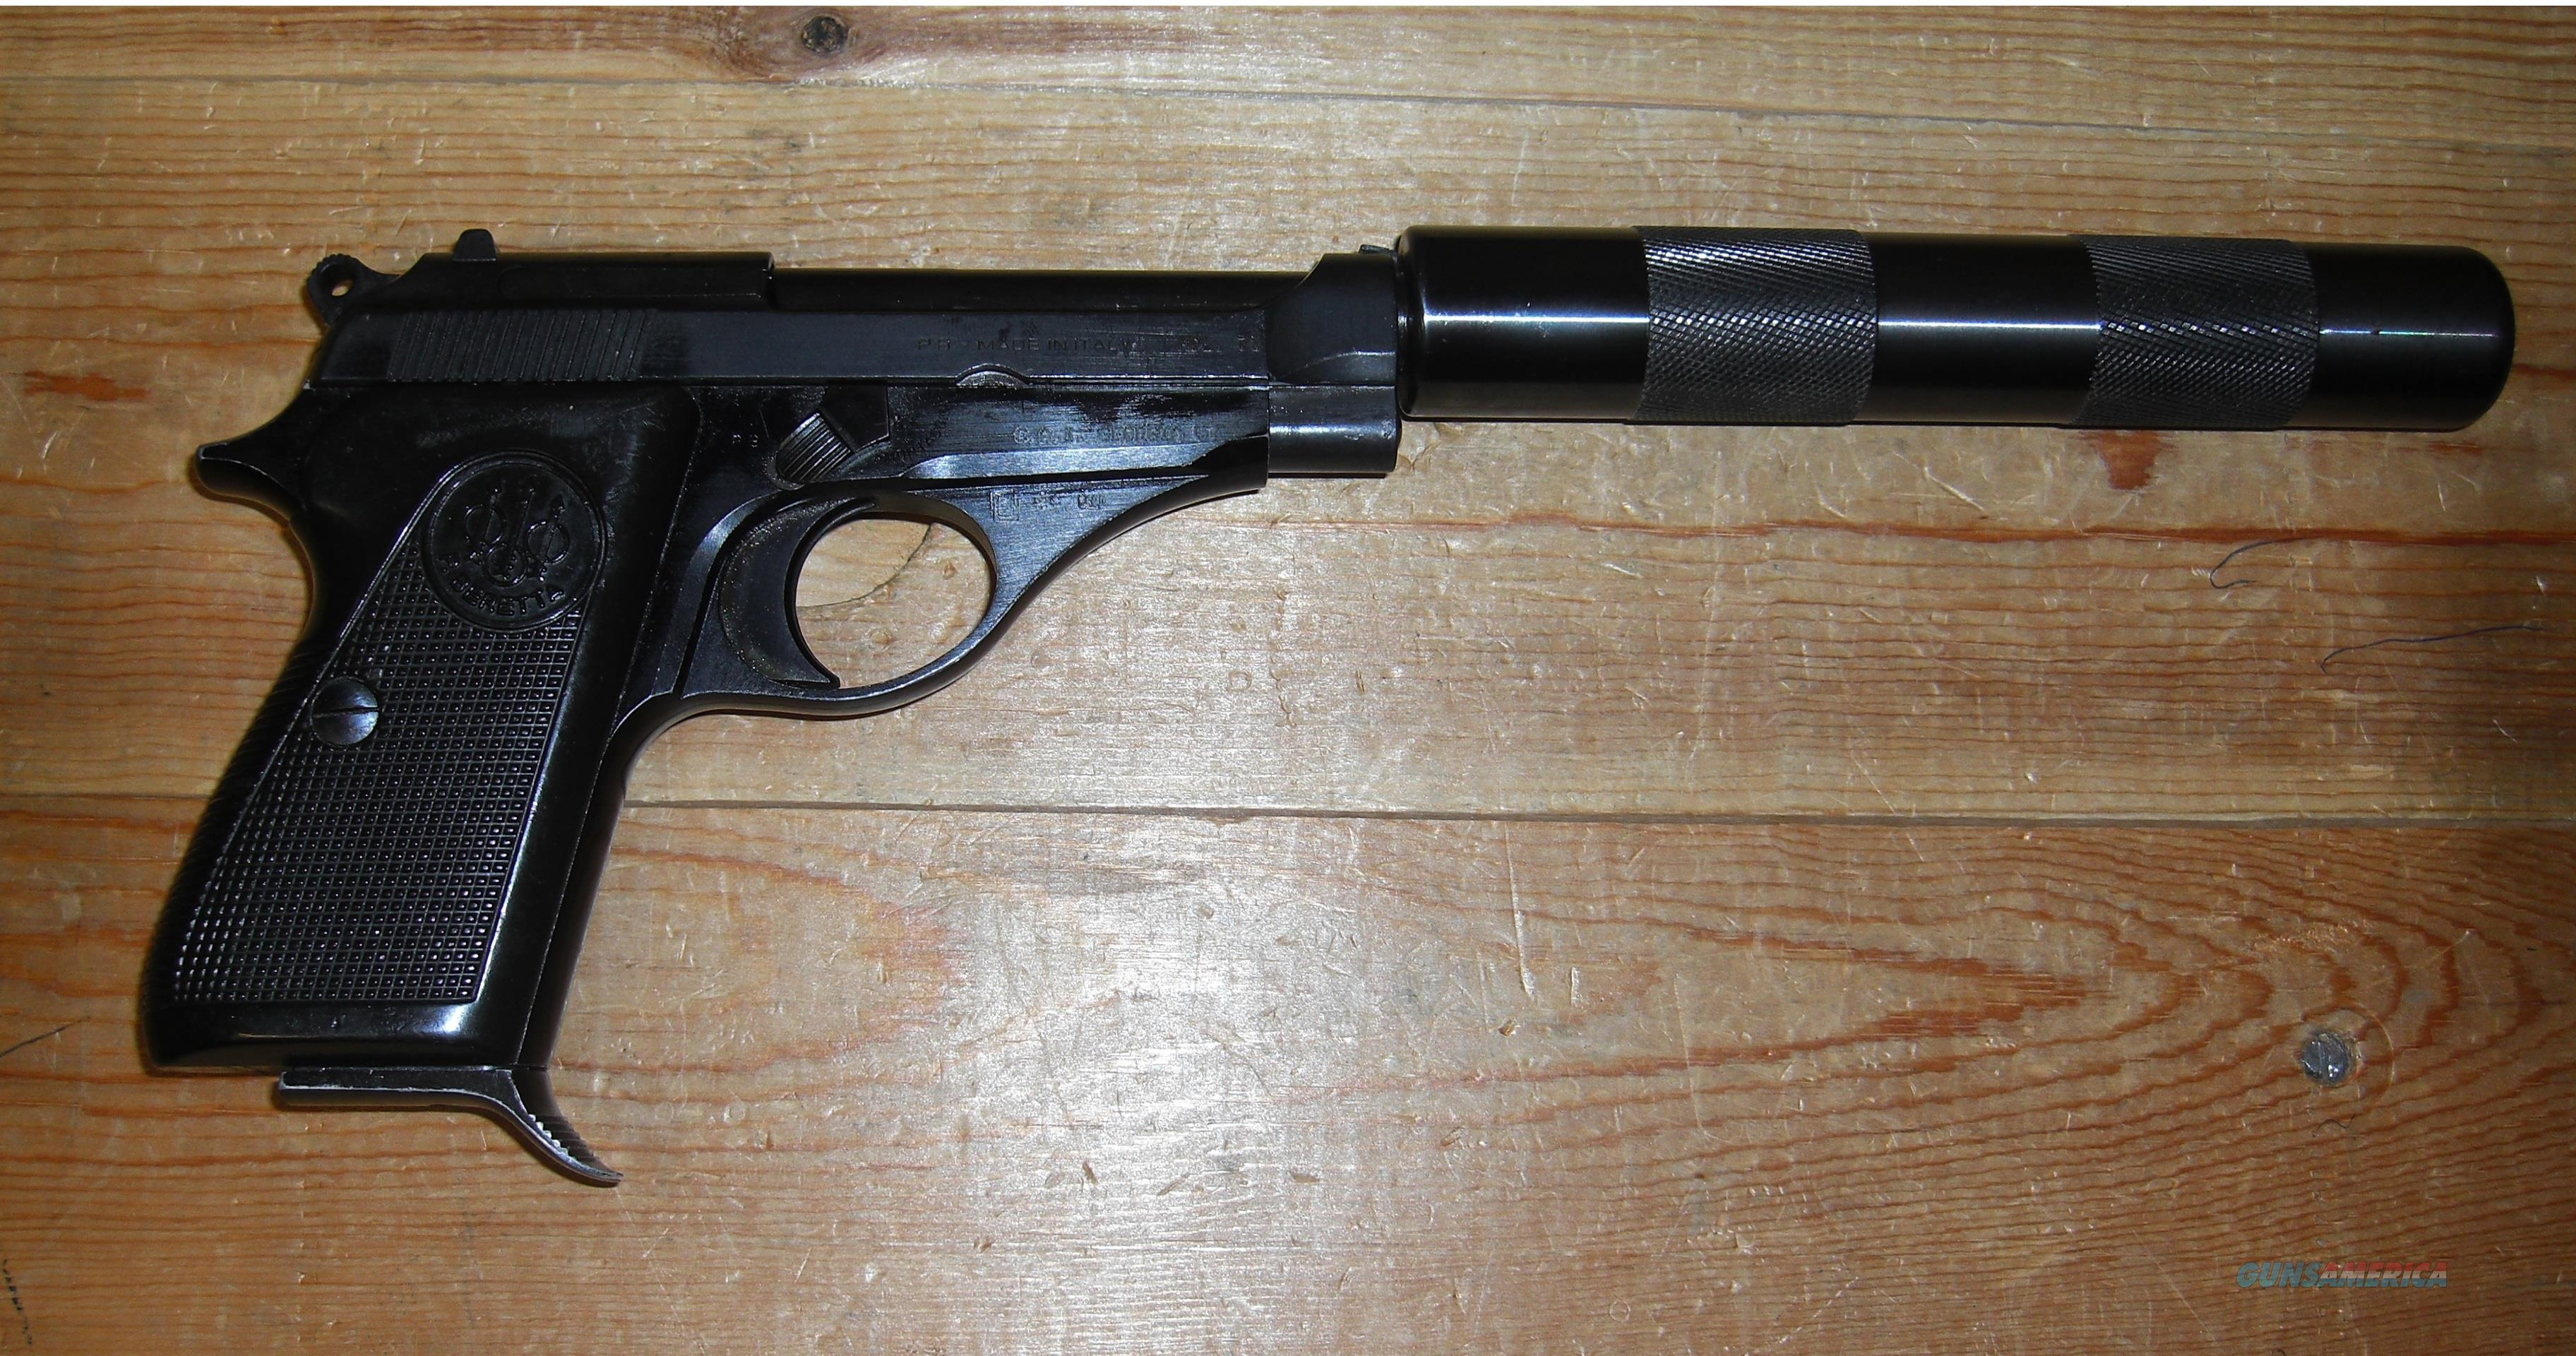 71 Jaguar  w/non-removable fake suppressor  Guns > Pistols > Beretta Pistols > Rare & Collectible